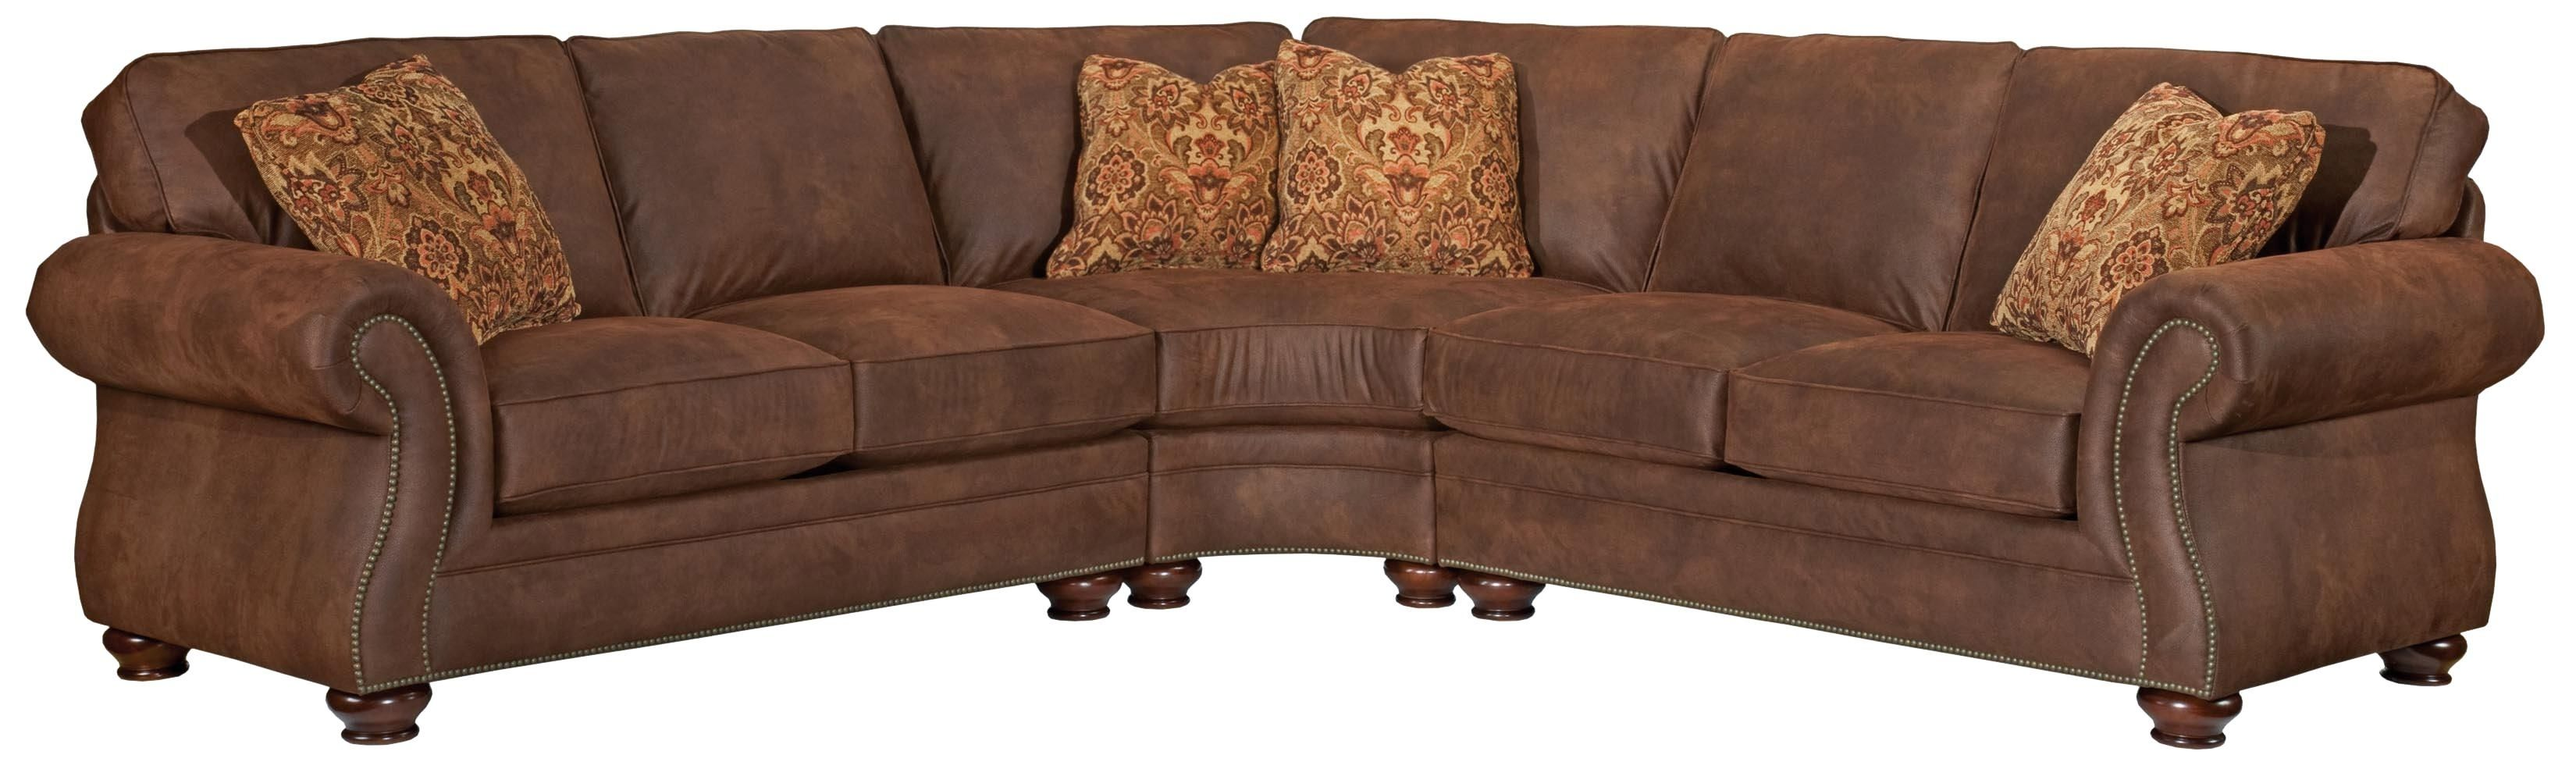 Sectional Sofas At Broyhill Design Concepts List